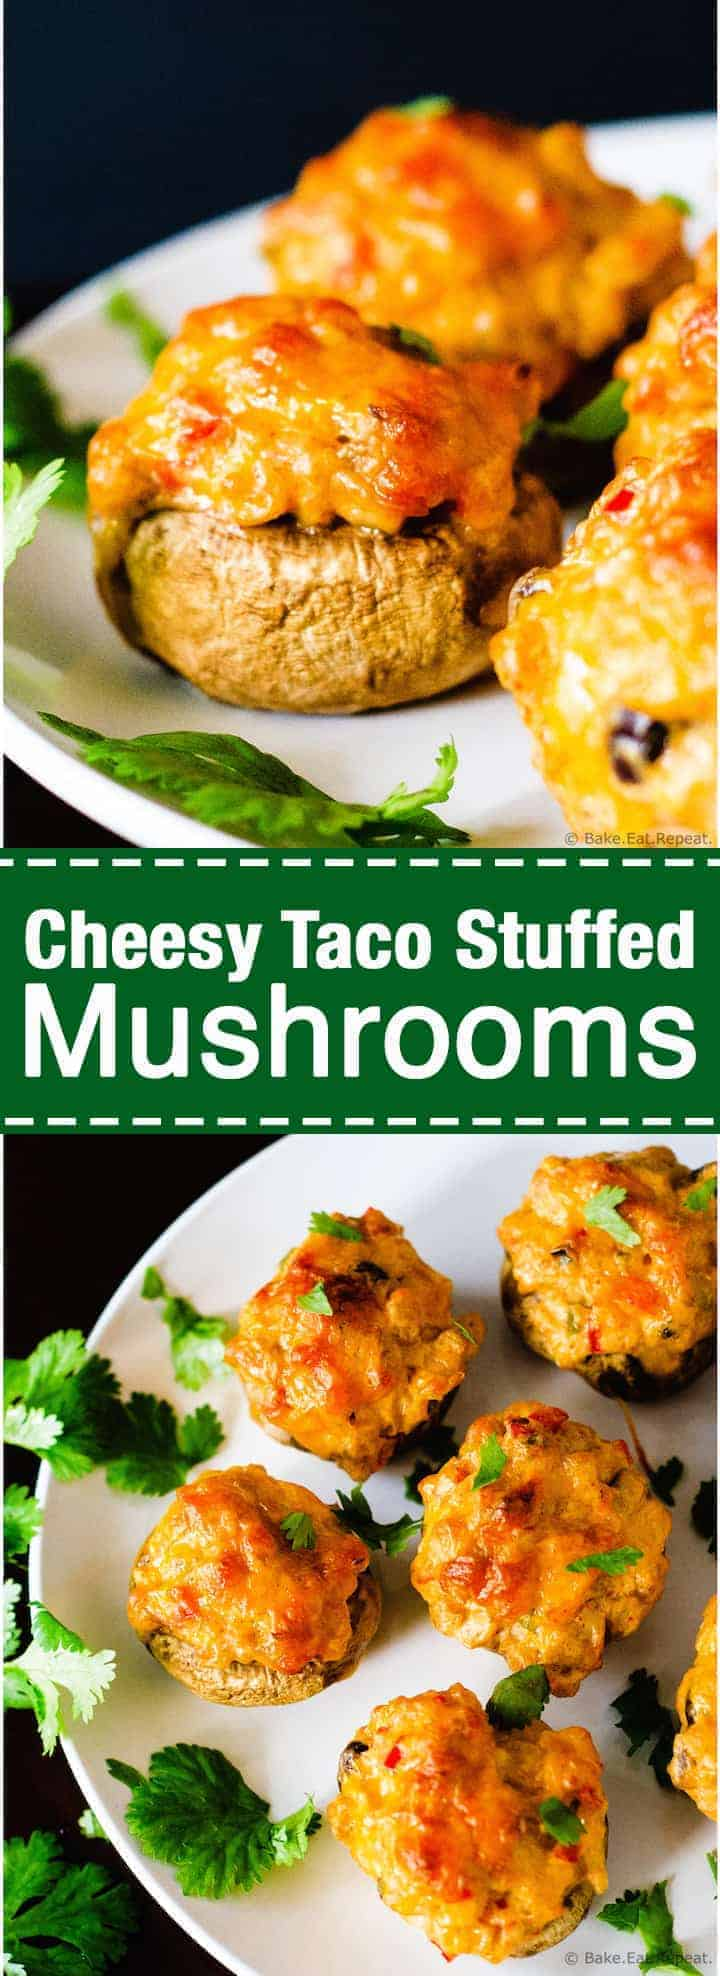 These cheesy taco stuffed mushrooms are easy to make and make the perfect appetizer!